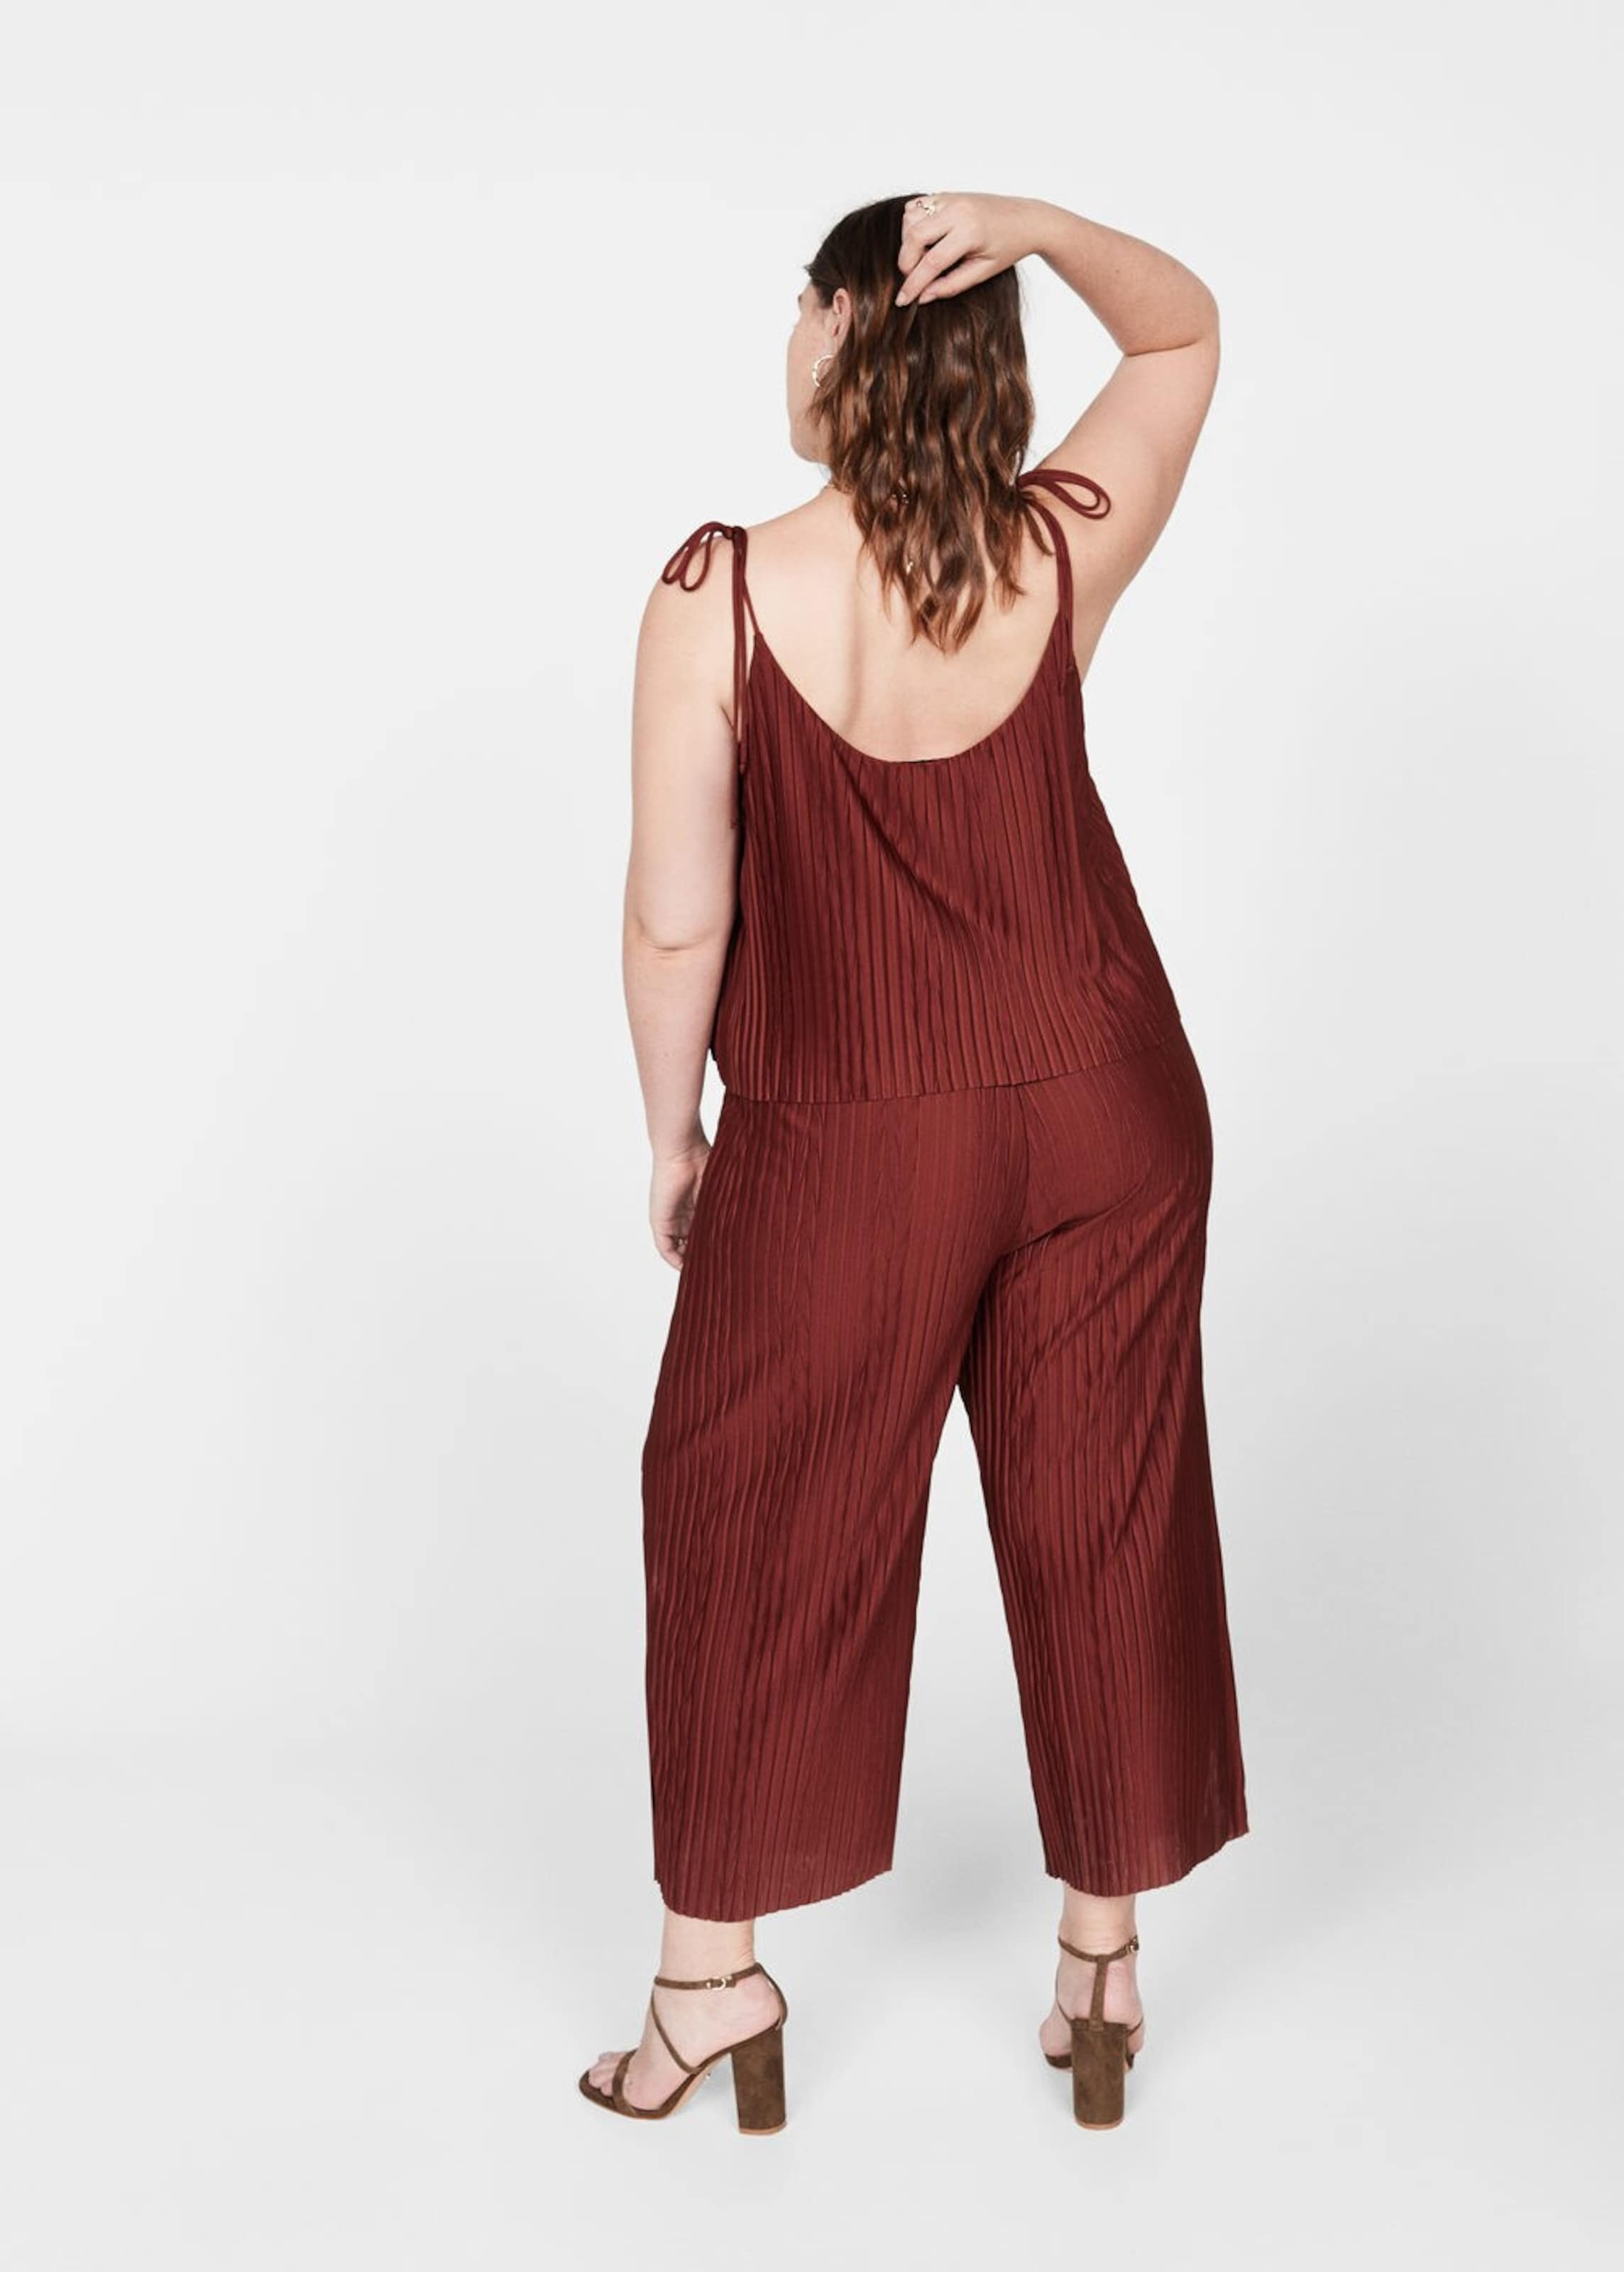 Rostrot Mango Overall Violeta 'plesi' In By Nmvw8n0